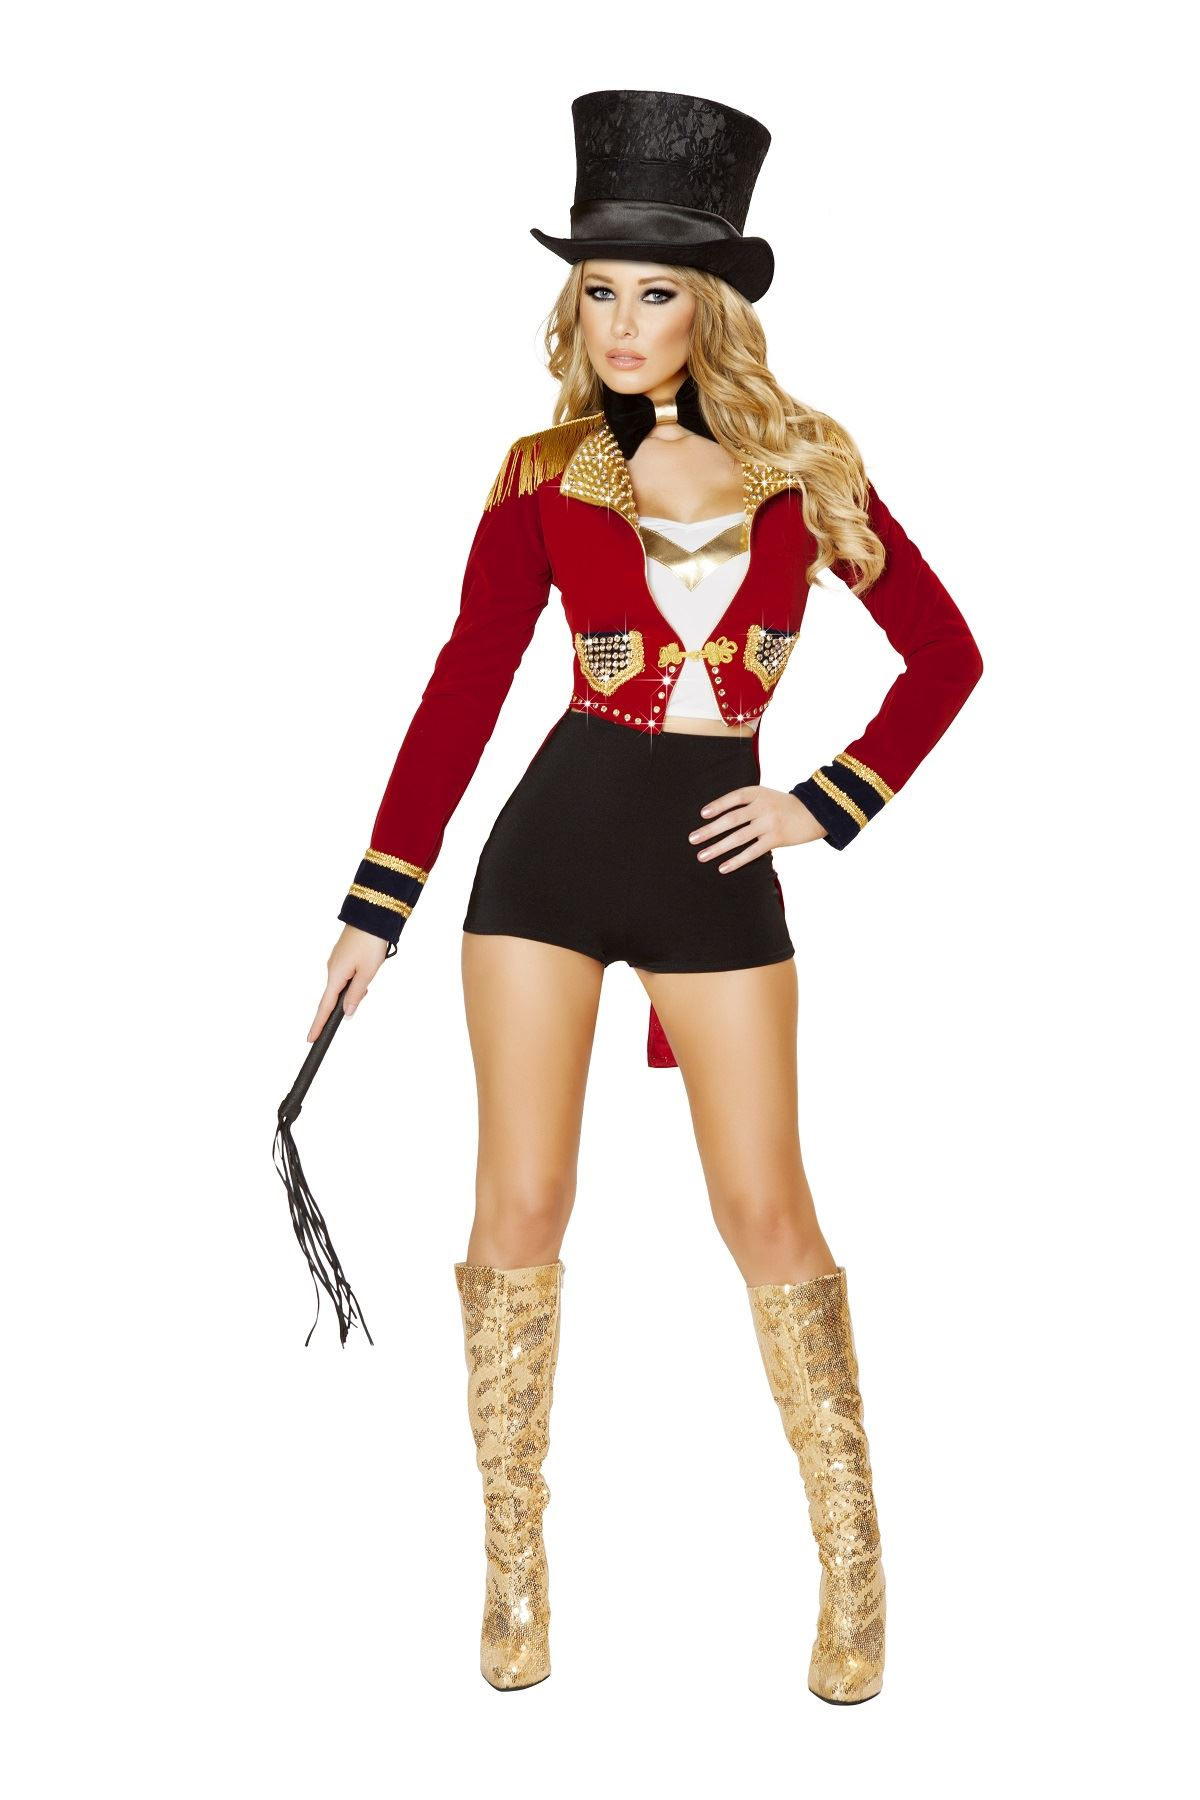 ... Circus Leader Women Halloween Costume  $179.99  The Costume Land